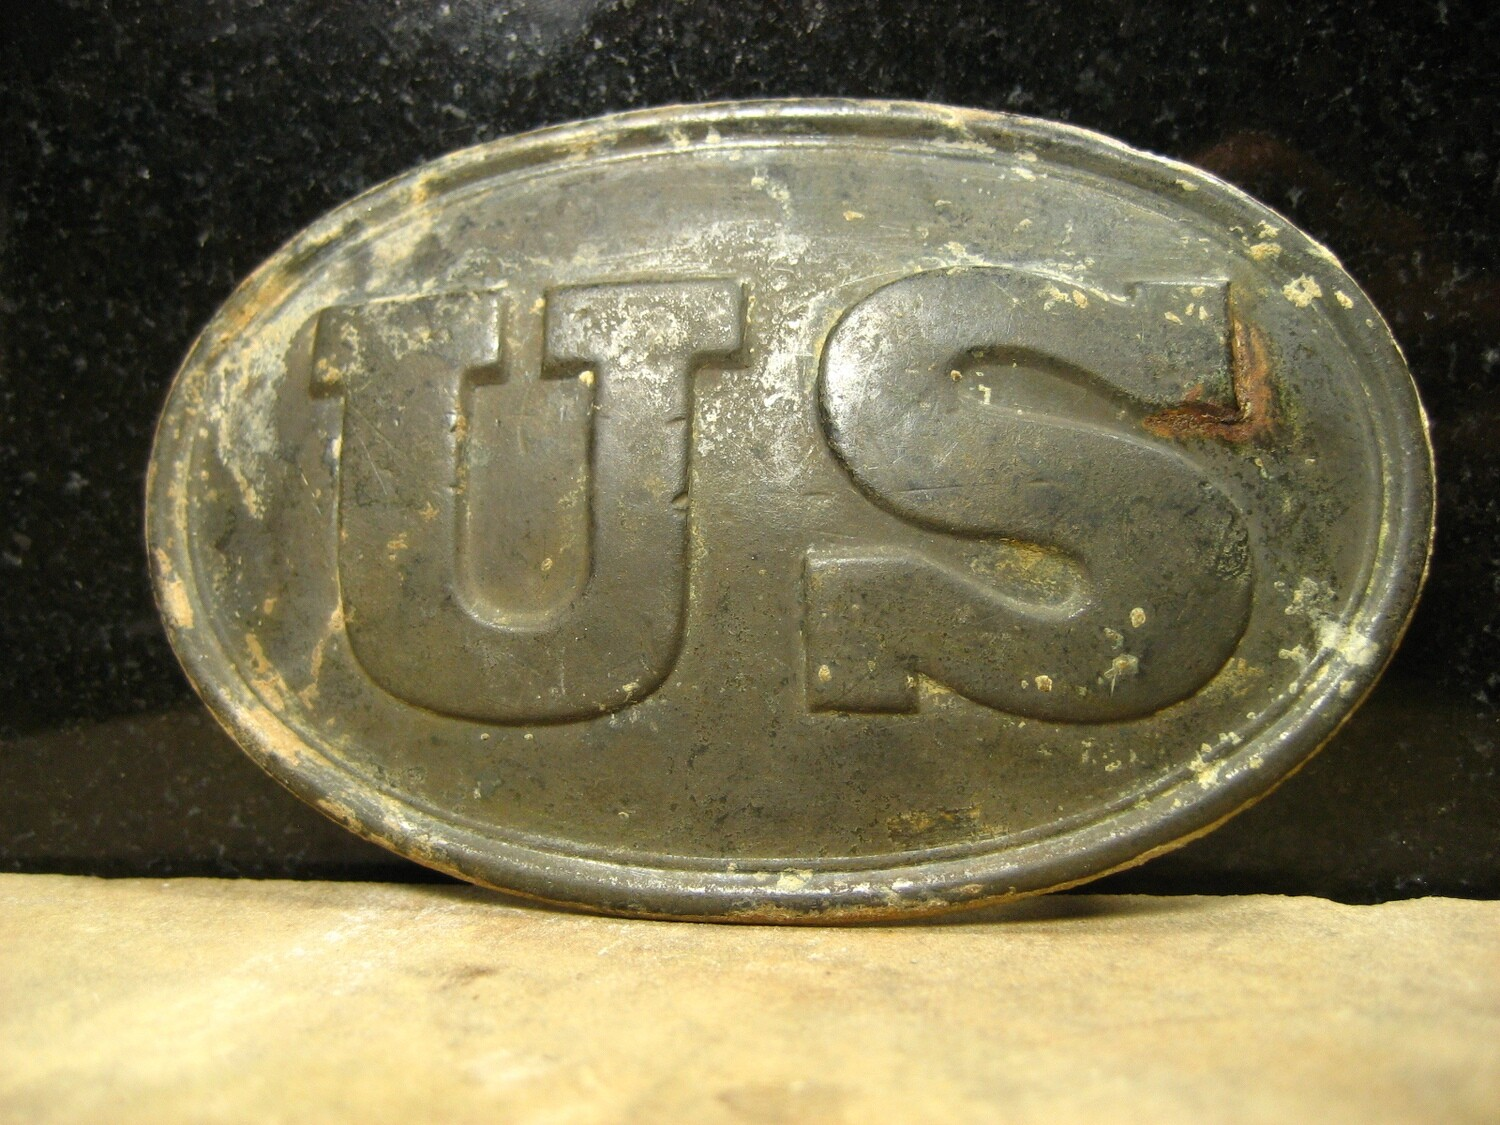 3/3 - PRICE REDUCED 30% - GETTYSBURG - DEVIL'S DEN AREA - ROSENSTEEL FAMILY - Very Nice U.S. Box Plate with One Hook Remaining